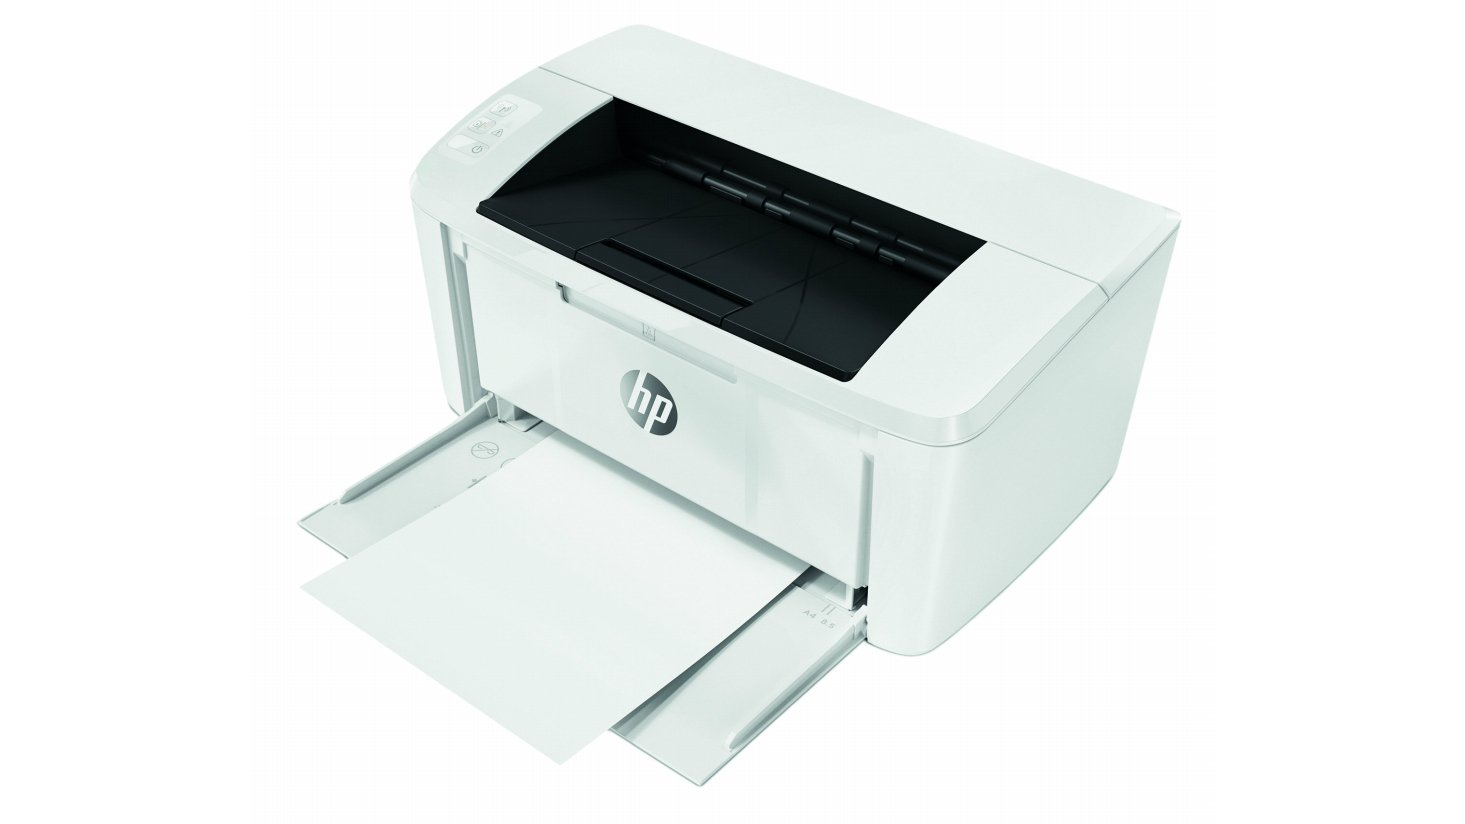 HP LaserJet Pro M15w review: A great basic printer, but only for